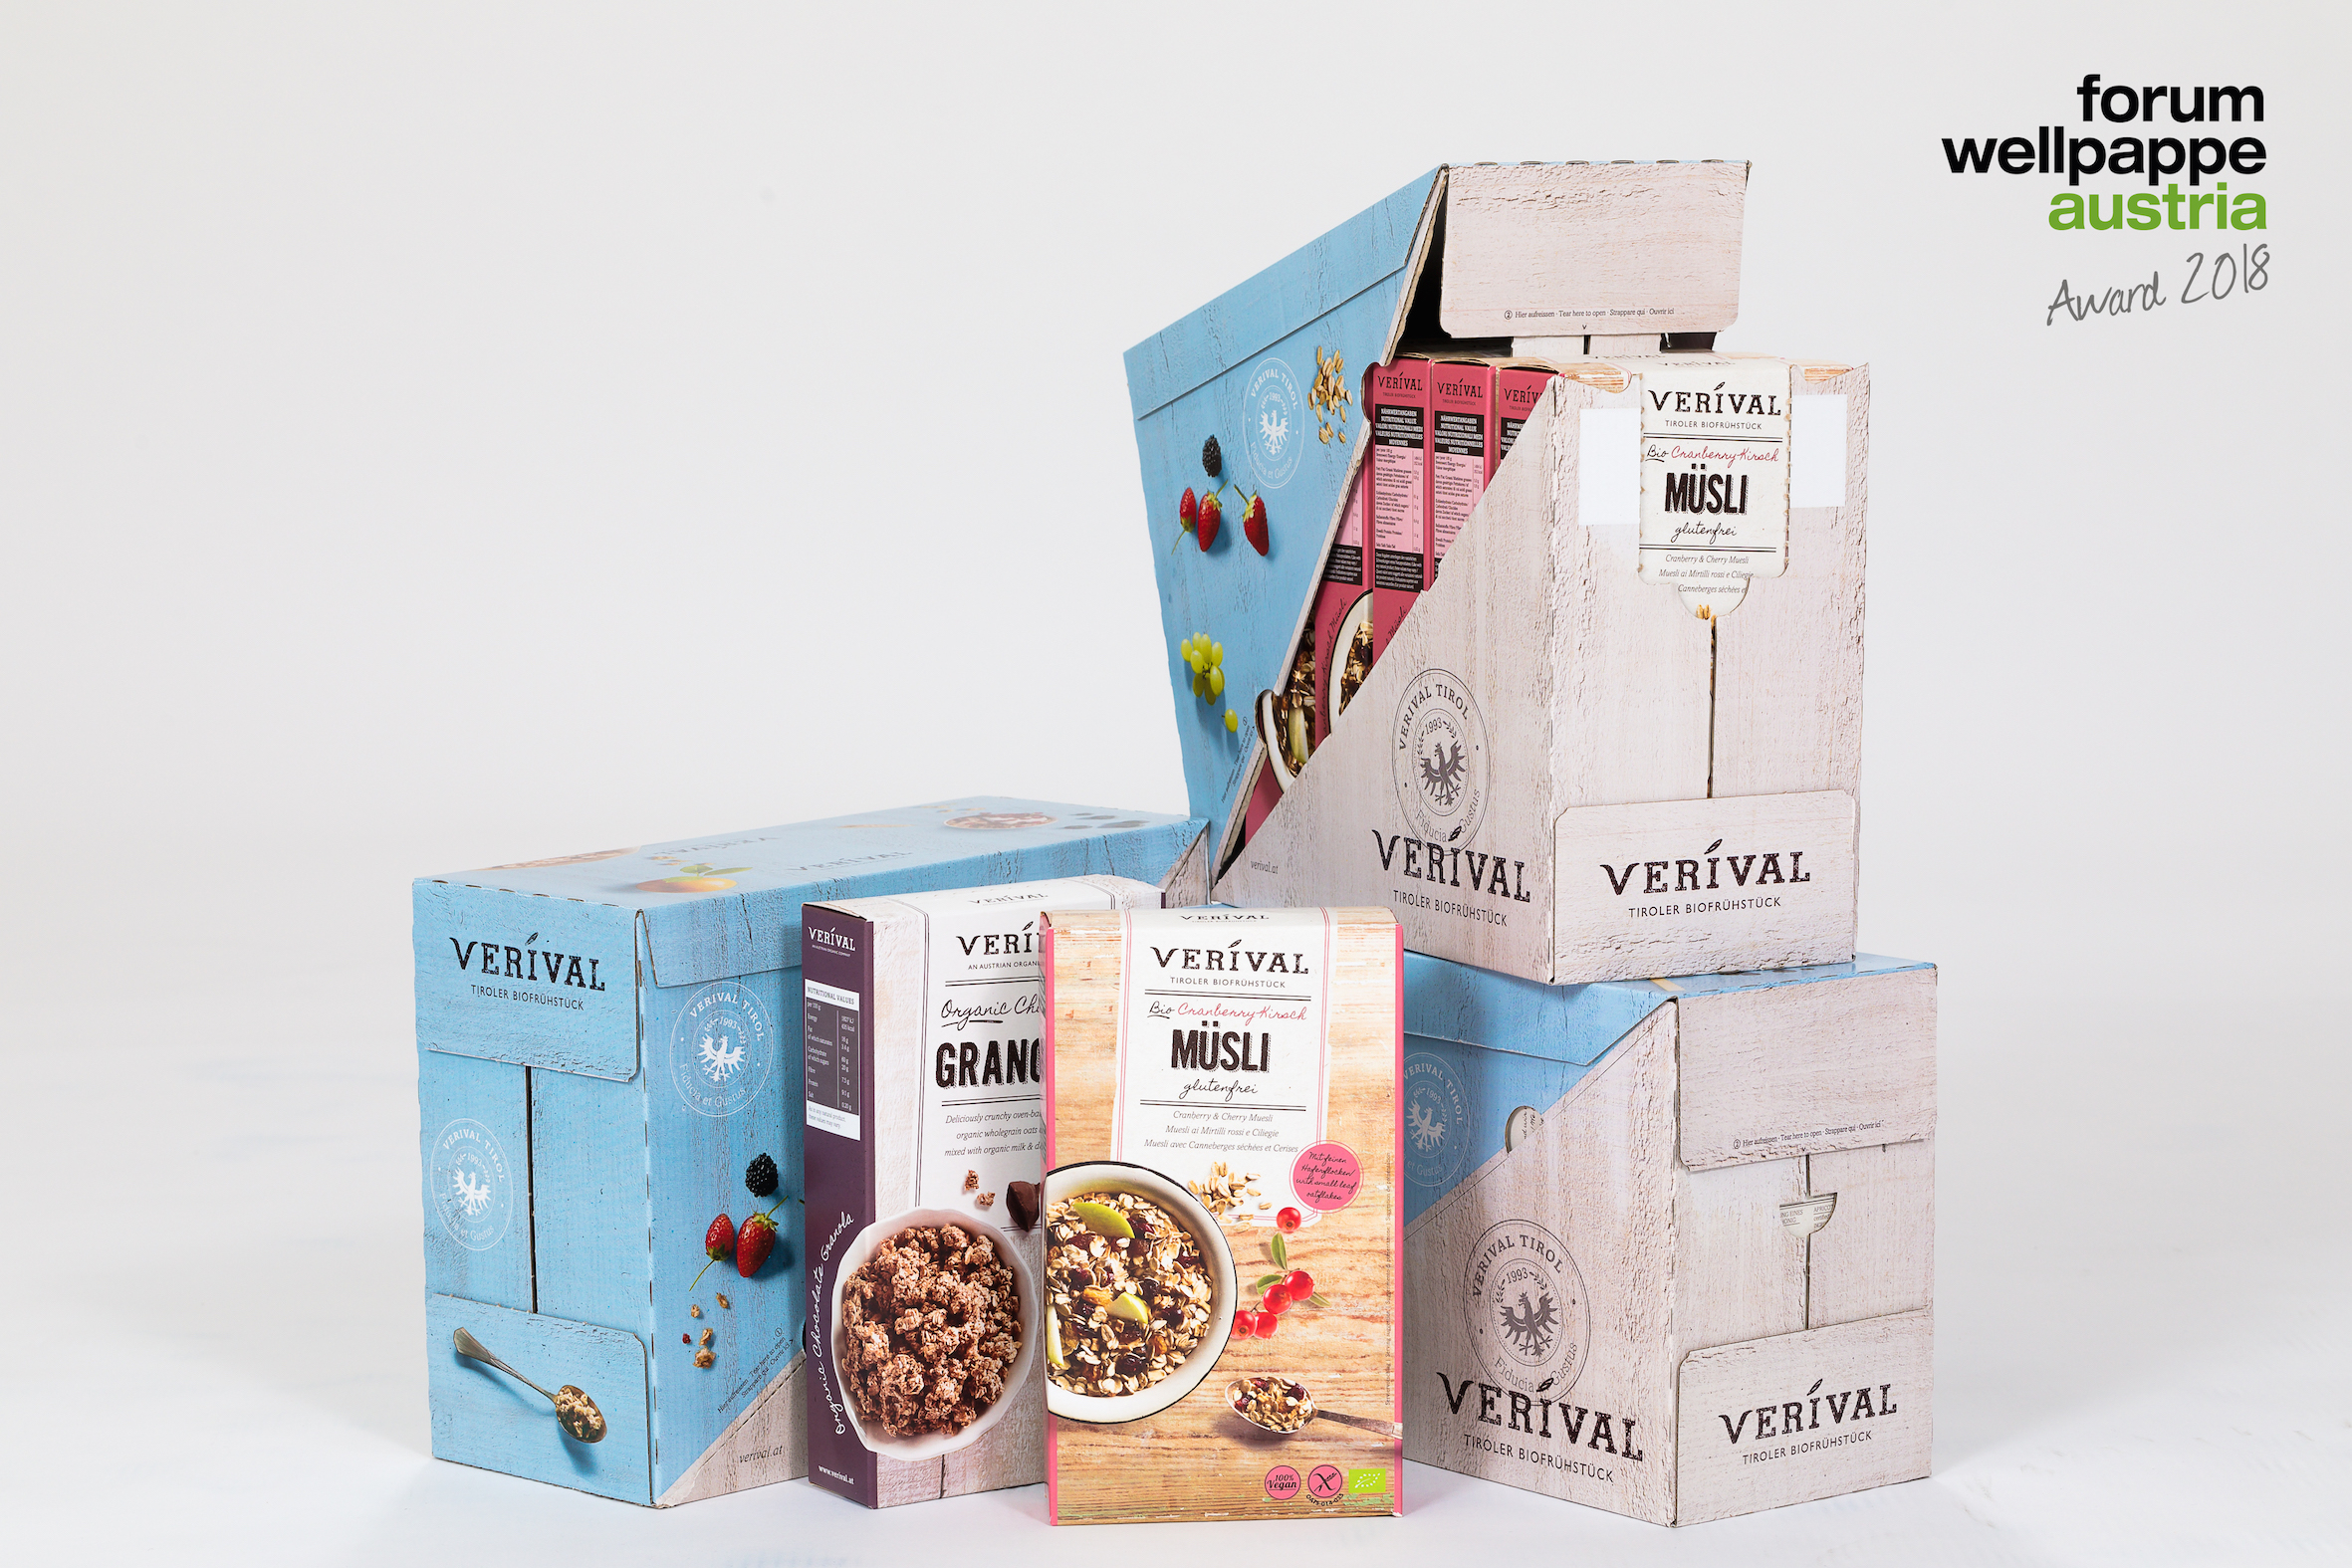 WELLPAPPE AWARD 2018 GEWINNER POS DS SMITH PACKAGING AUSTRIA © COM_UNIT/L. SCHEDL